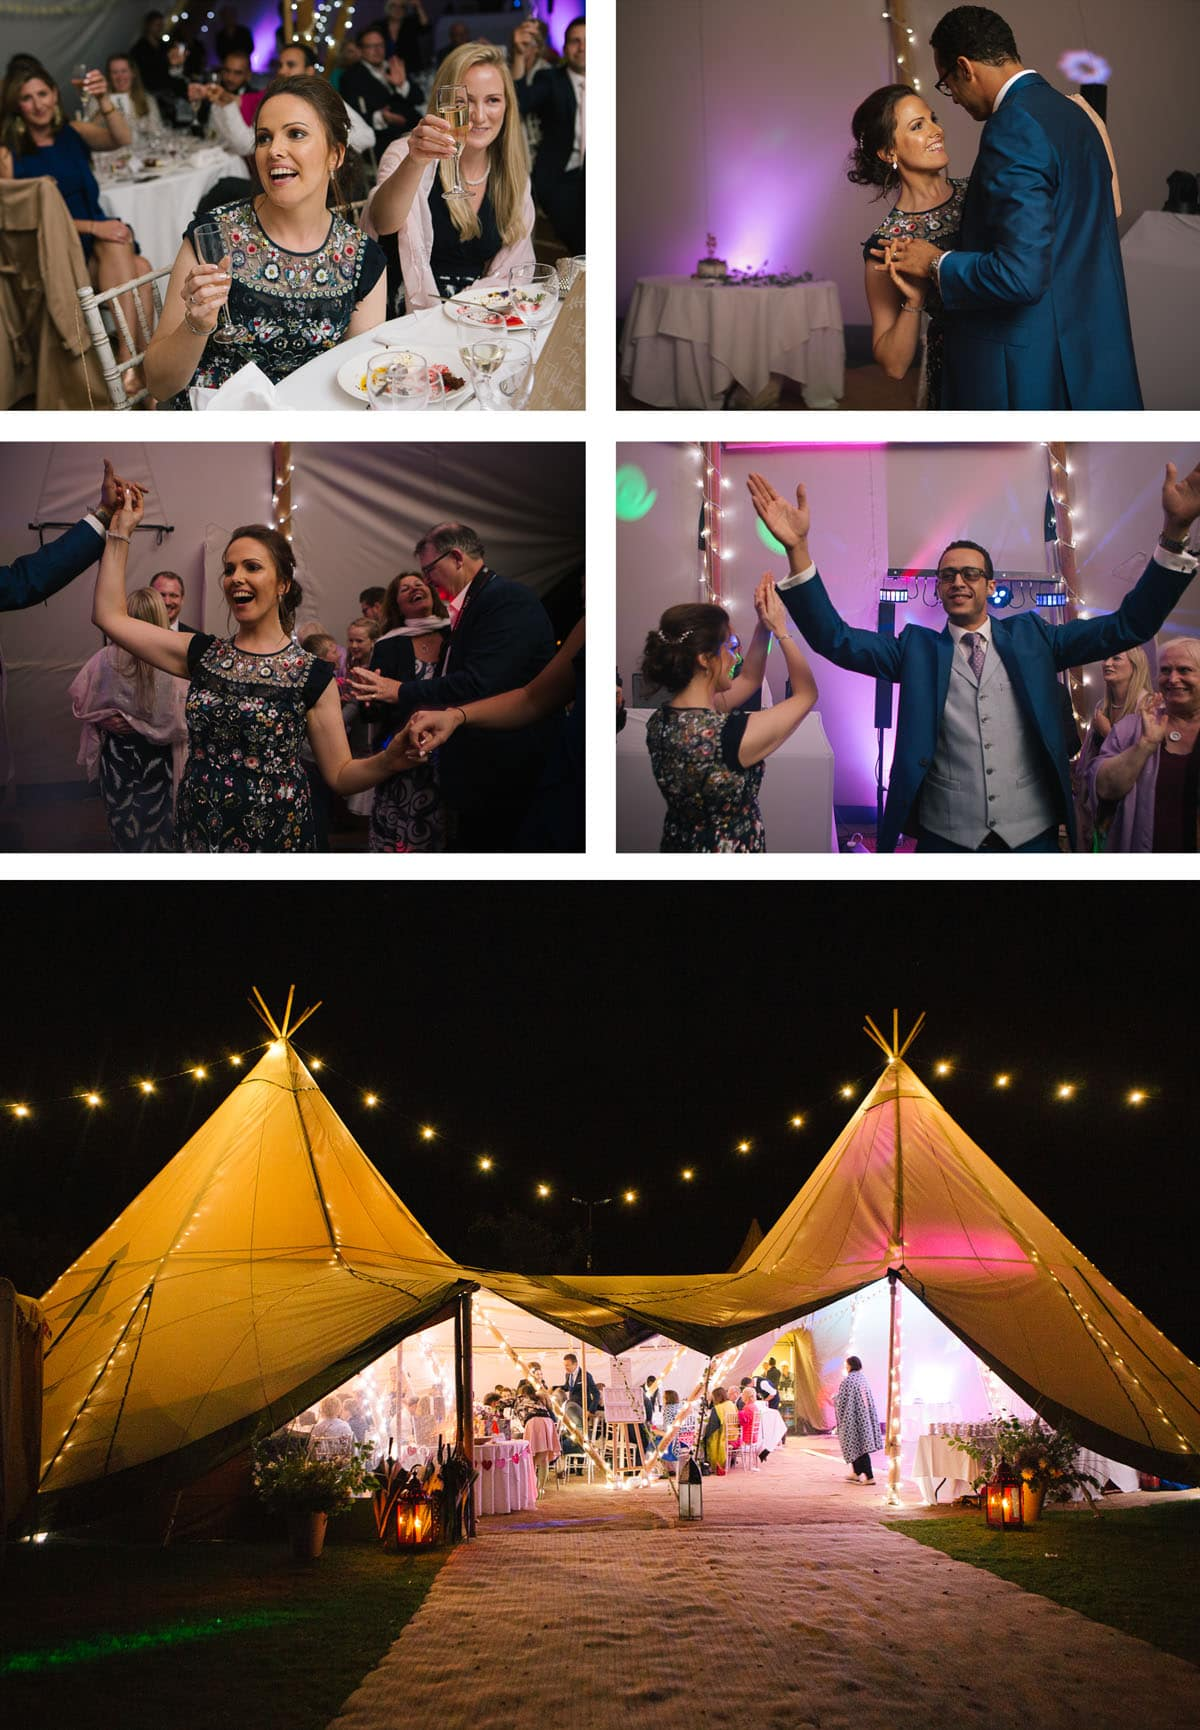 Collage of images of bride and groom on dancefloor and teepee at night